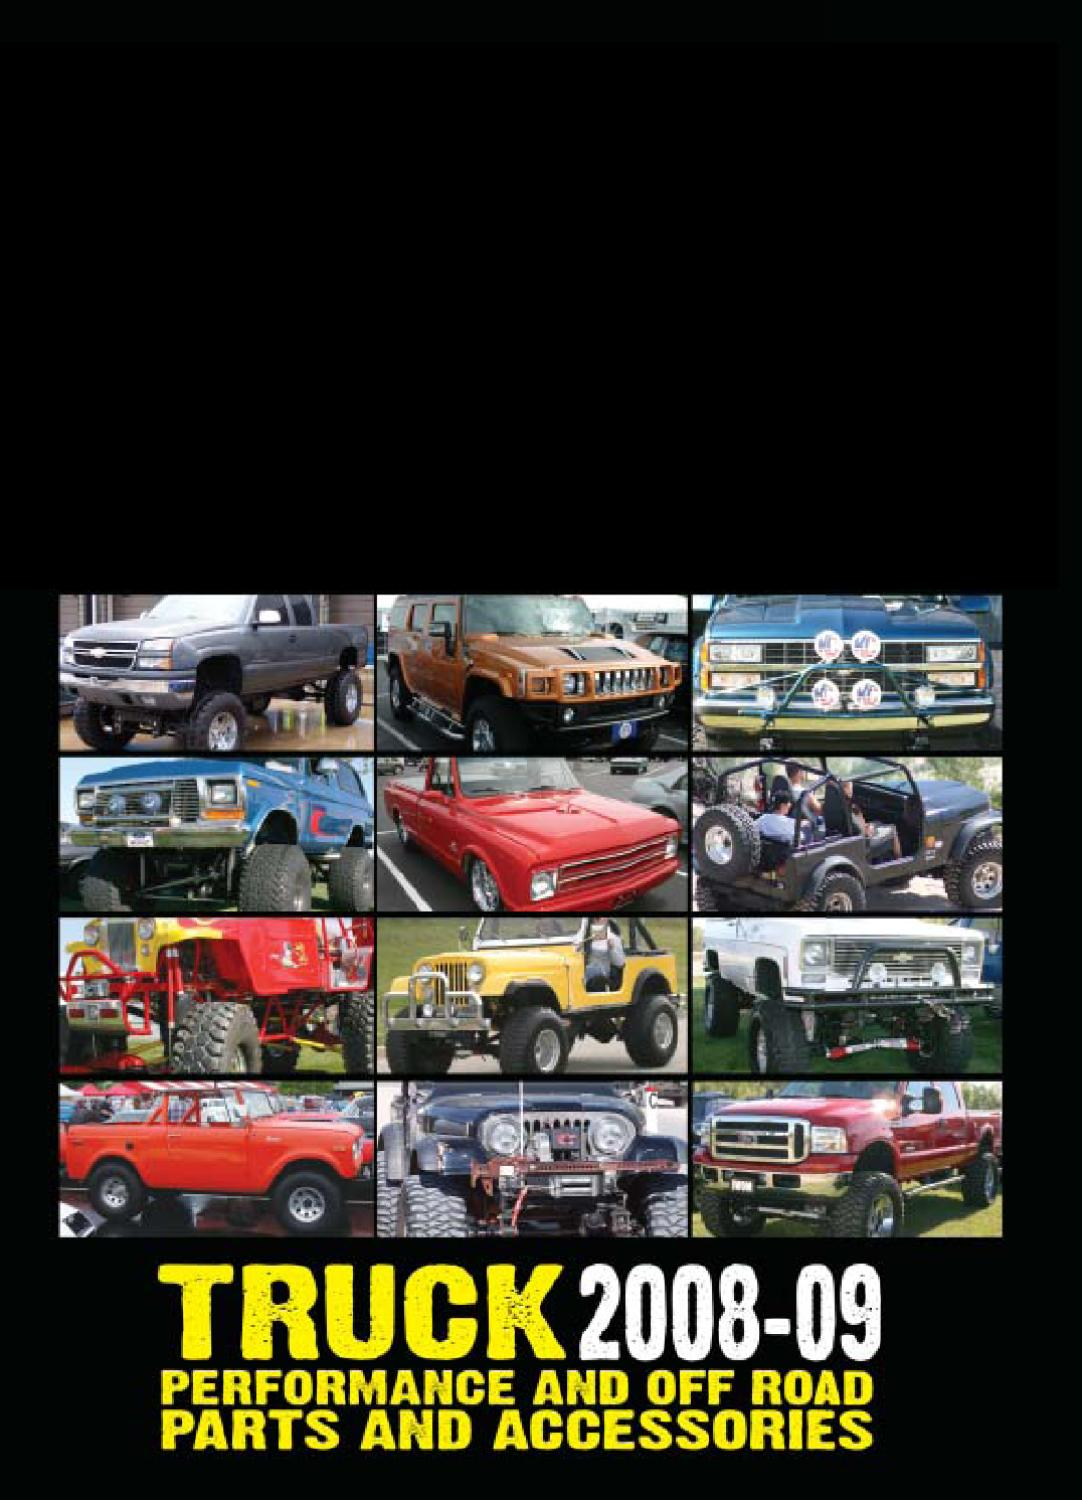 2010 truck catalog by timothy meyer issuu fandeluxe Gallery